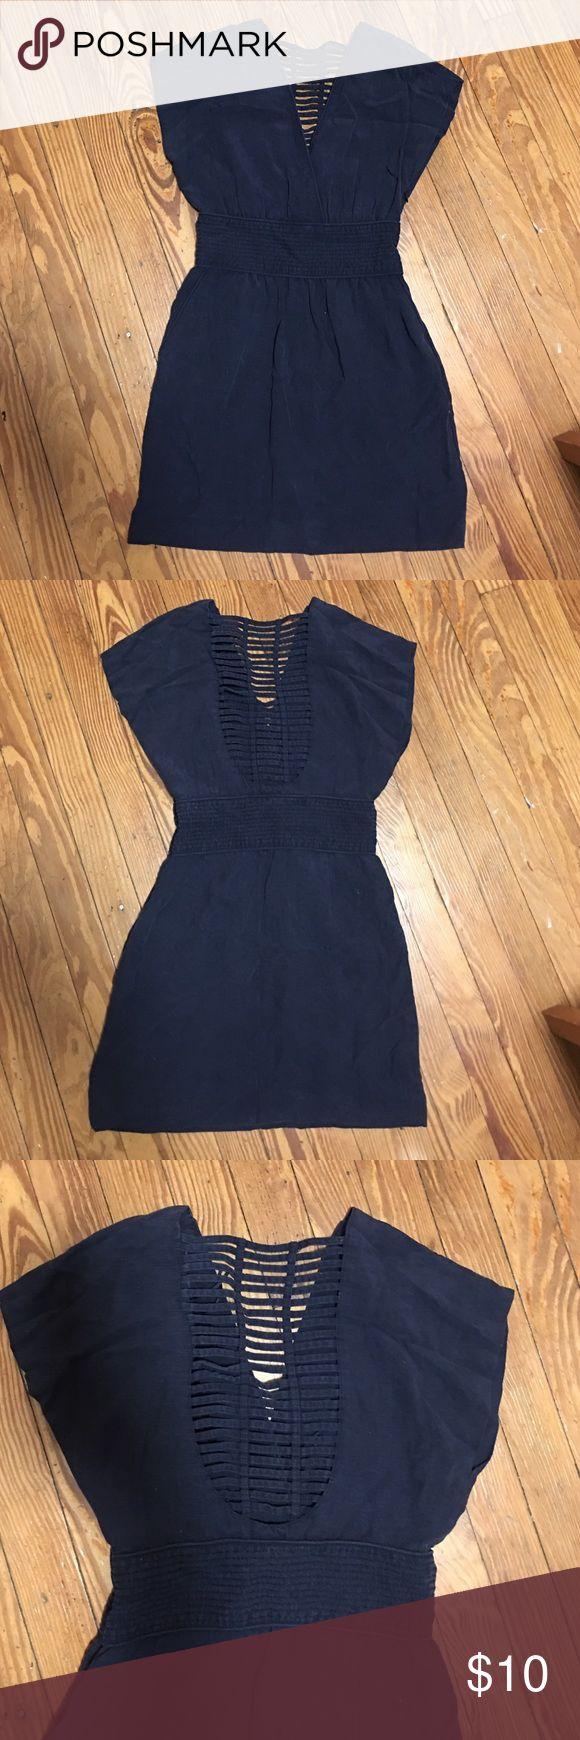 Mango collection Navy blue Summer Dress This navy blue summer dress from Mango Collection has cut outs in the back, which is sure to keep you cool.  Slightly faded for a laidback look, this dress is sure to get you noticed. Mango Dresses Midi